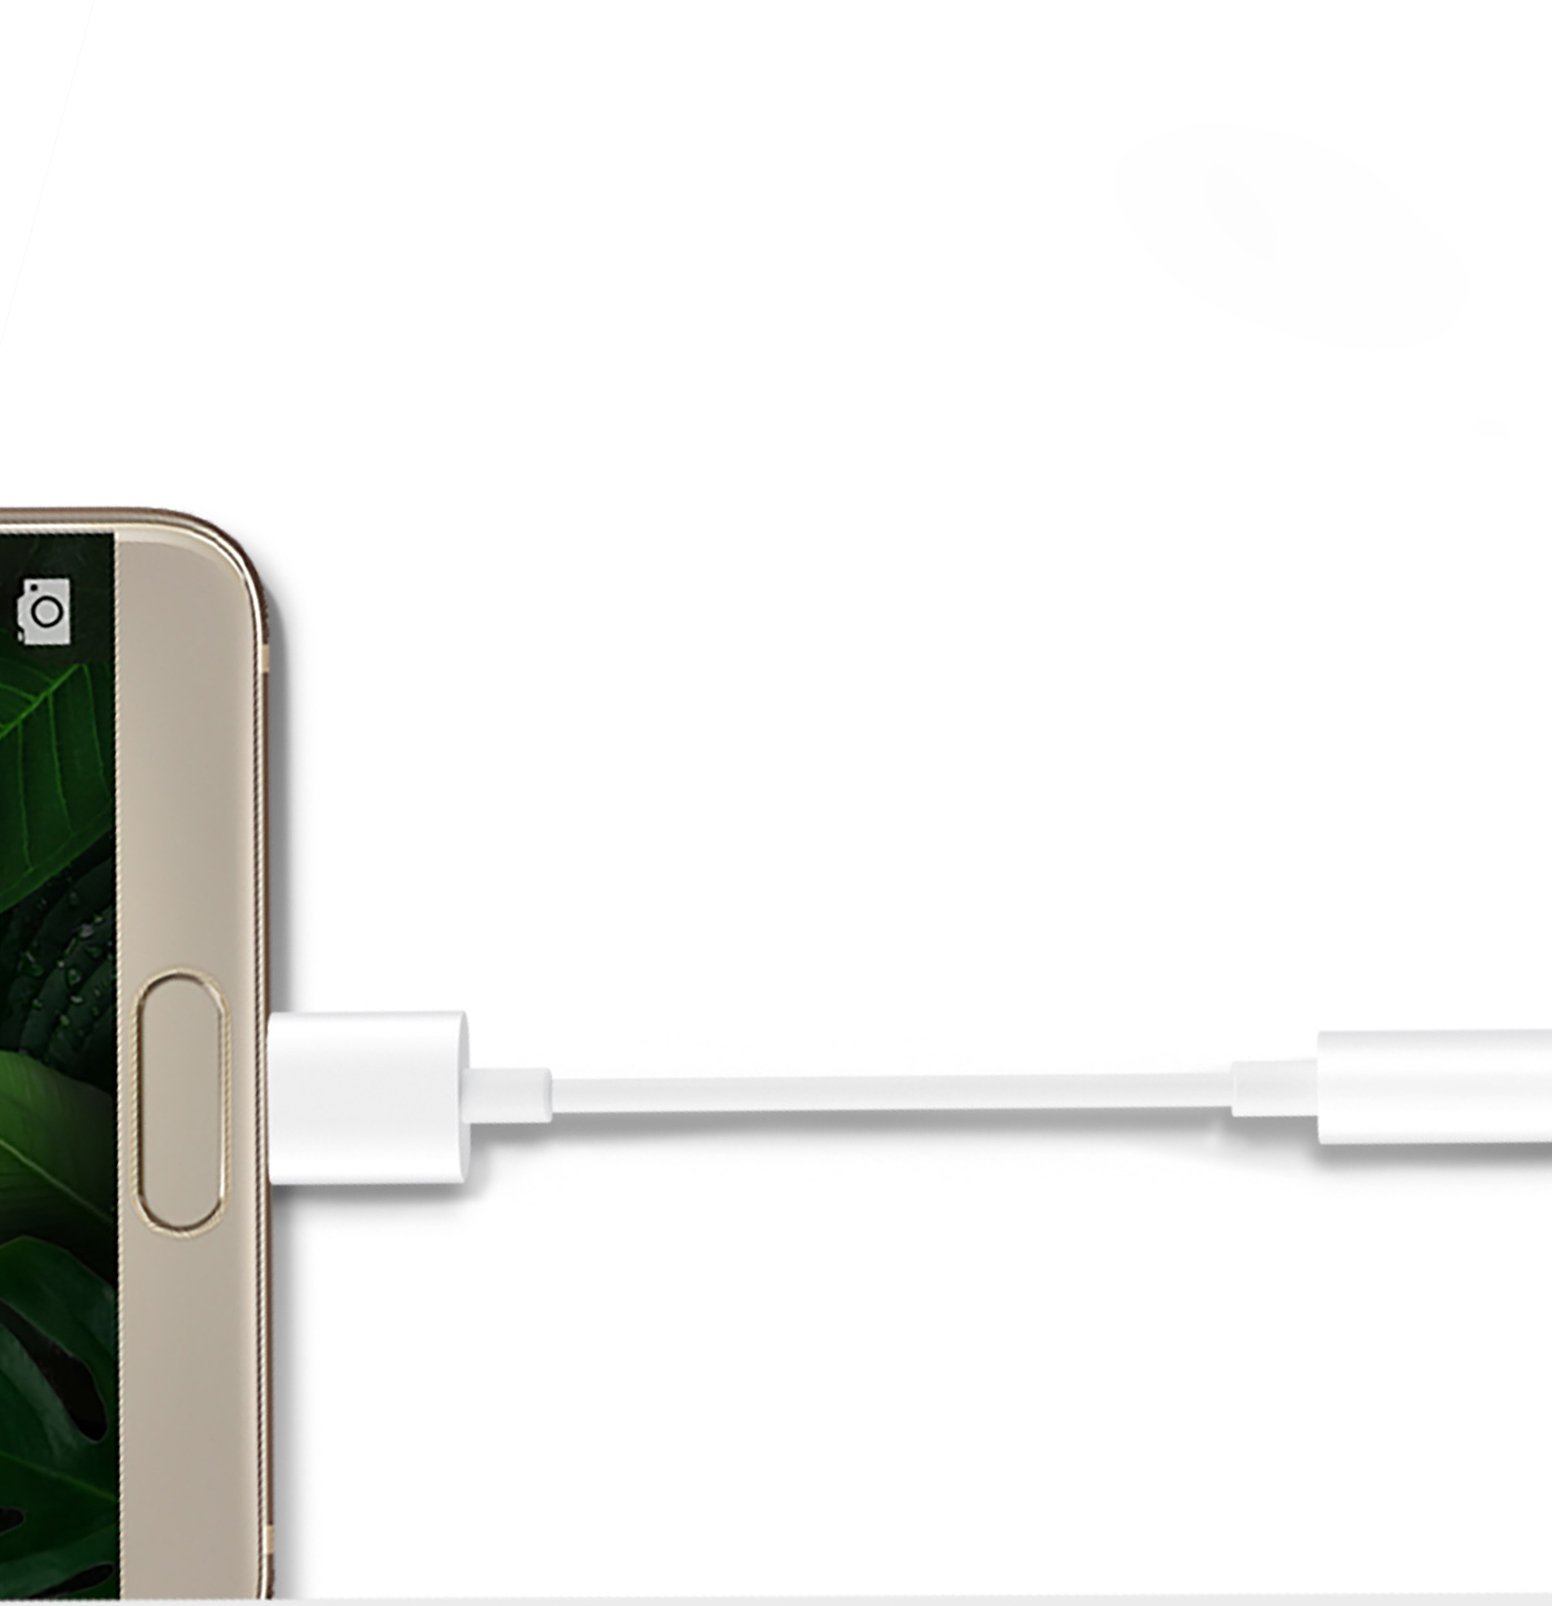 Kabel Huawei Data Cable USB-A do USB-C, biały